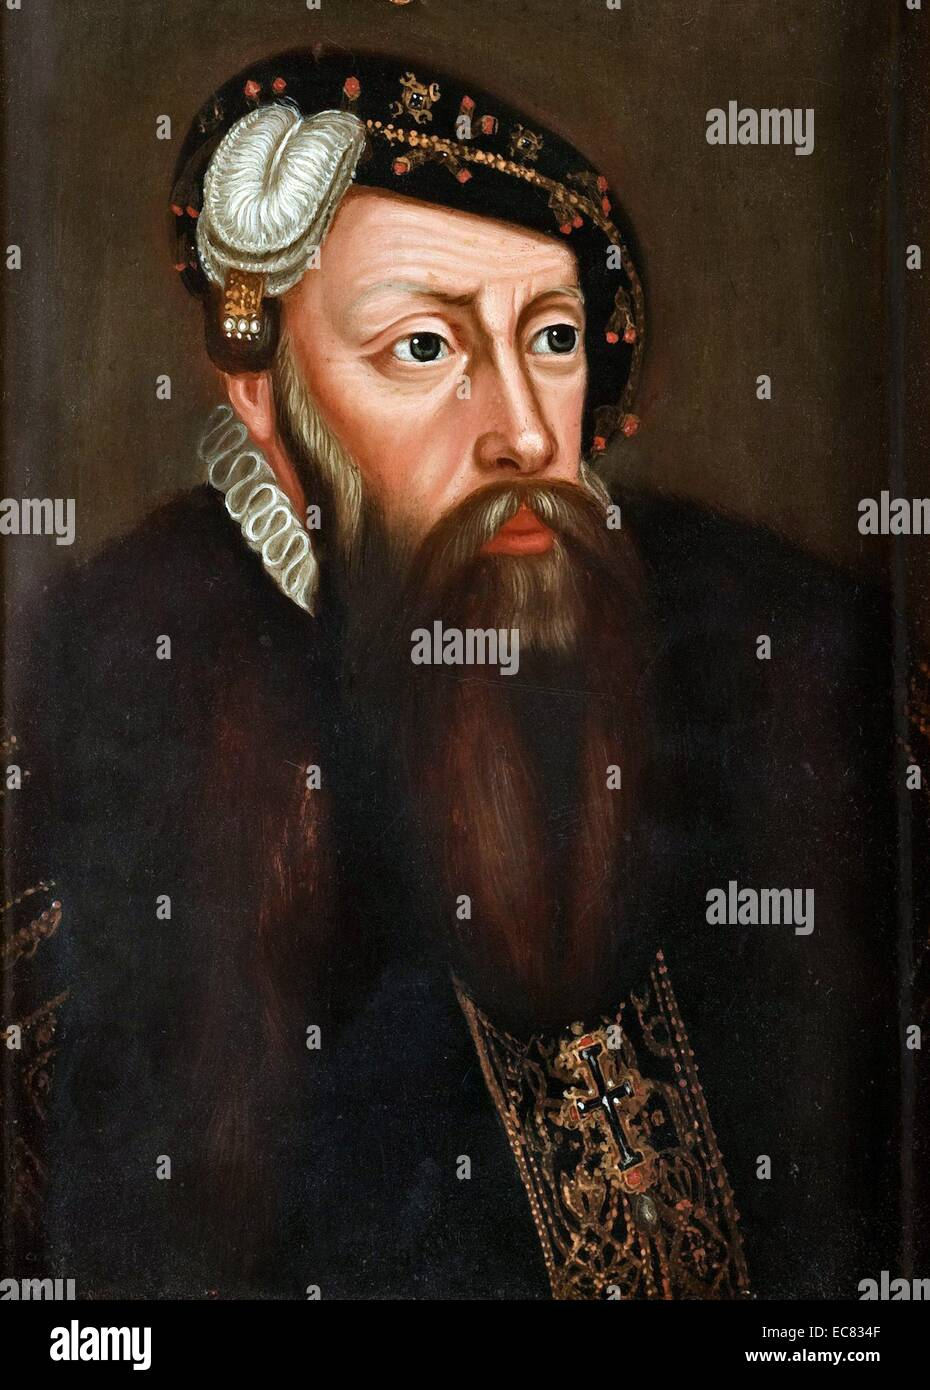 Gustav Vasa; King of Sweden from 1523 until his death, - Stock Image